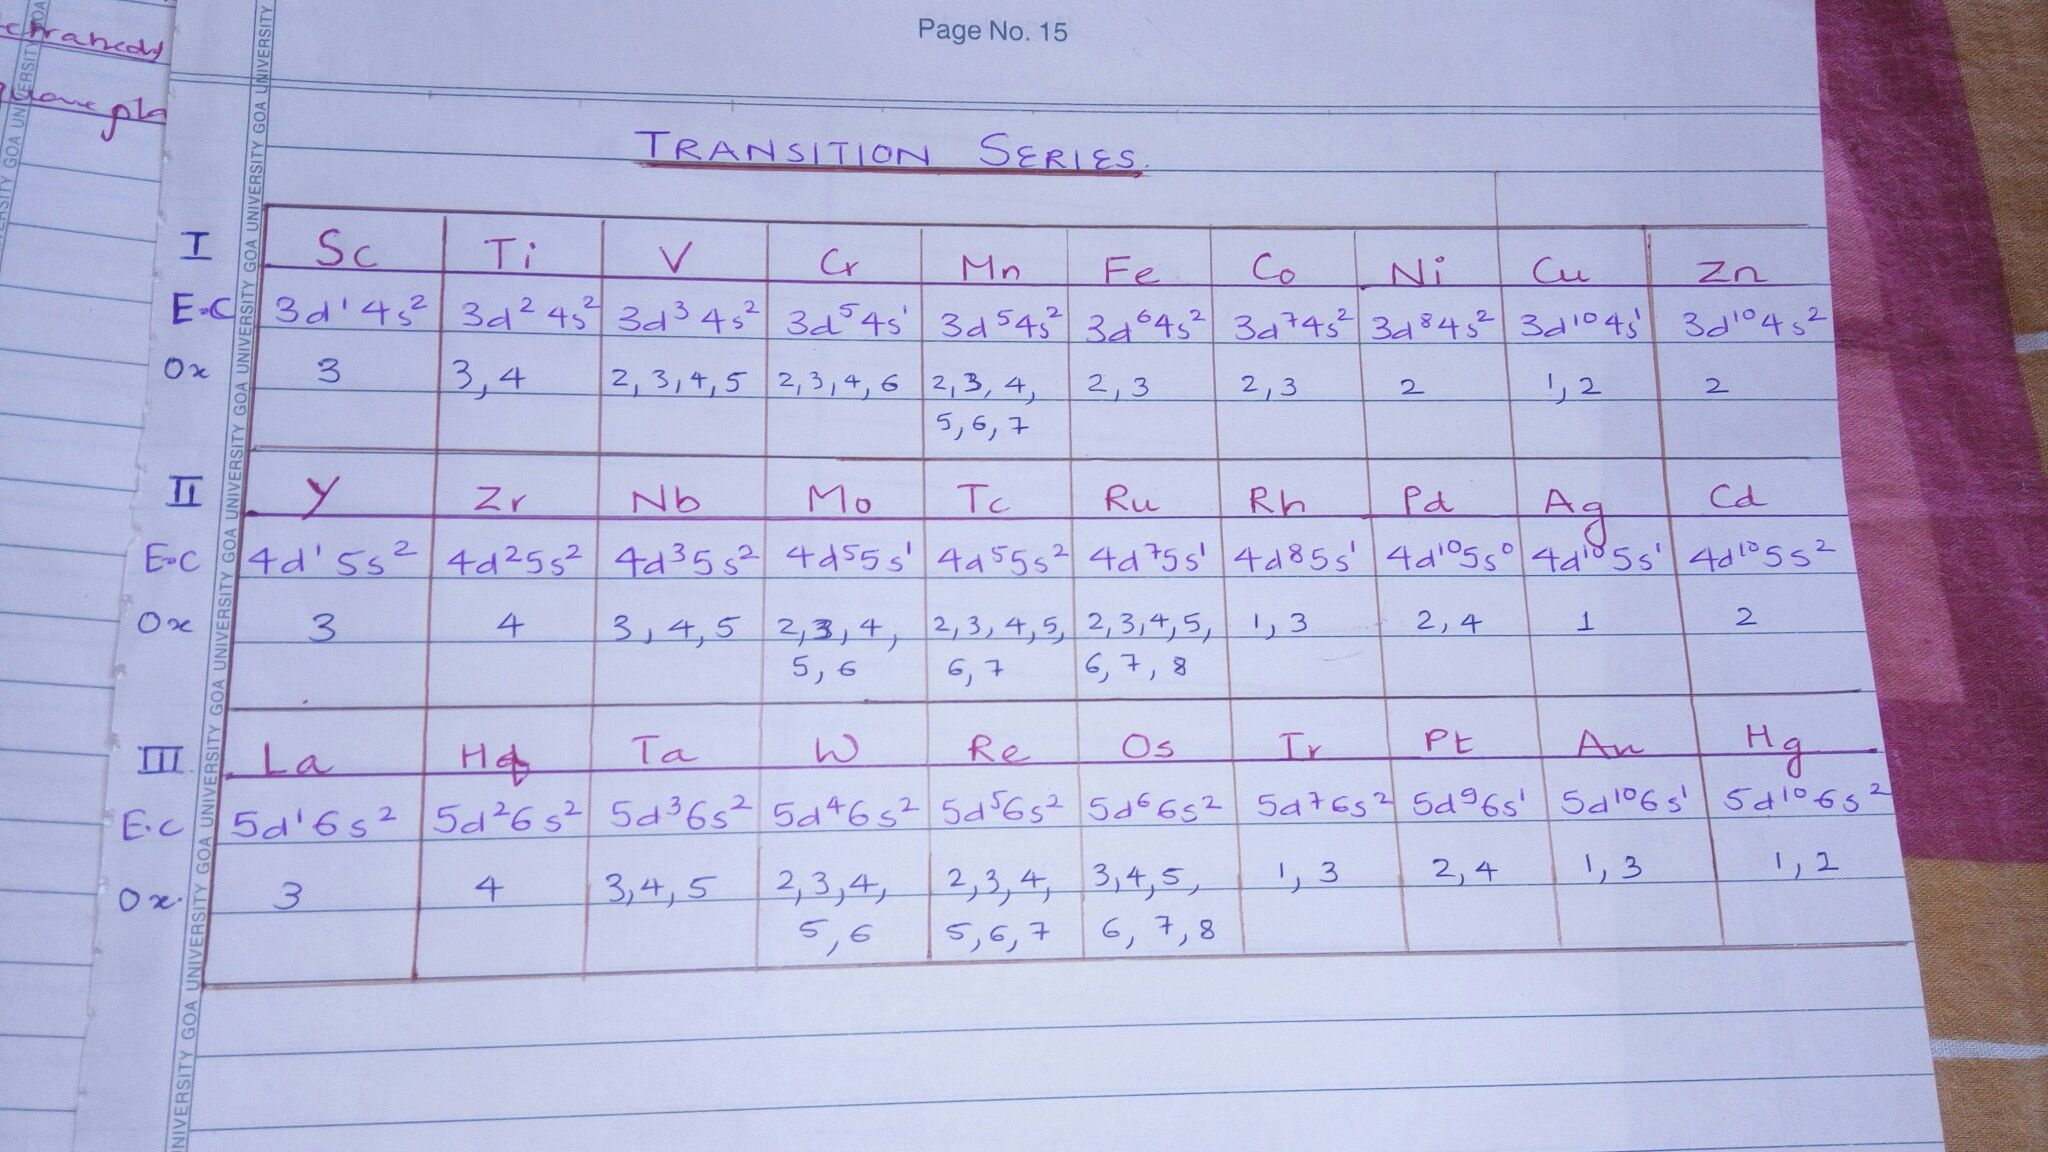 Transition Series With Electronic Configuration